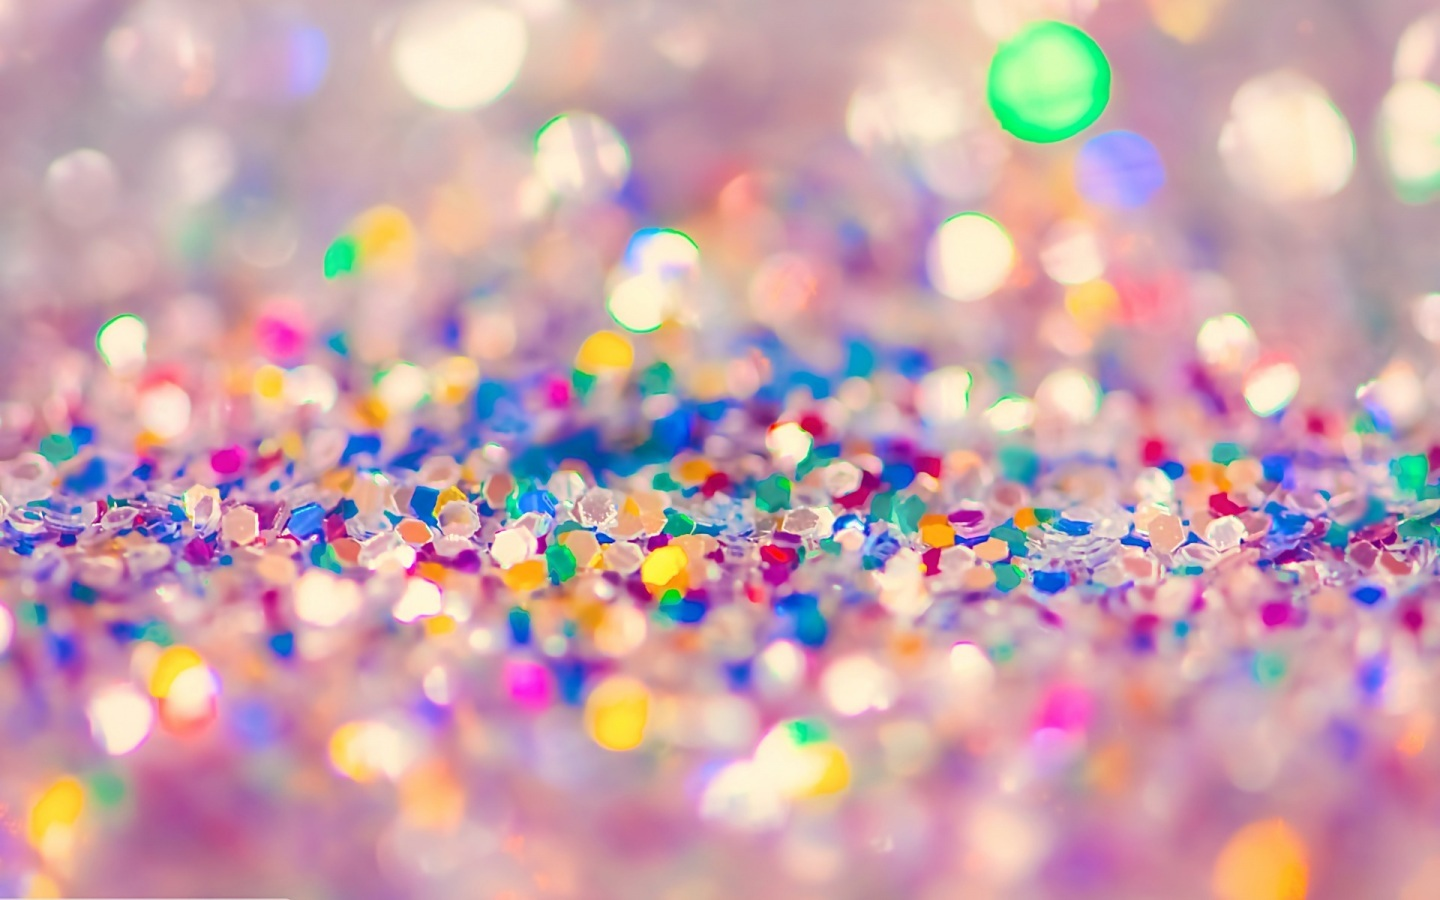 Photo Sparkle Wallpapers Best Glitter Background Wallpaper For Walls 1440x900